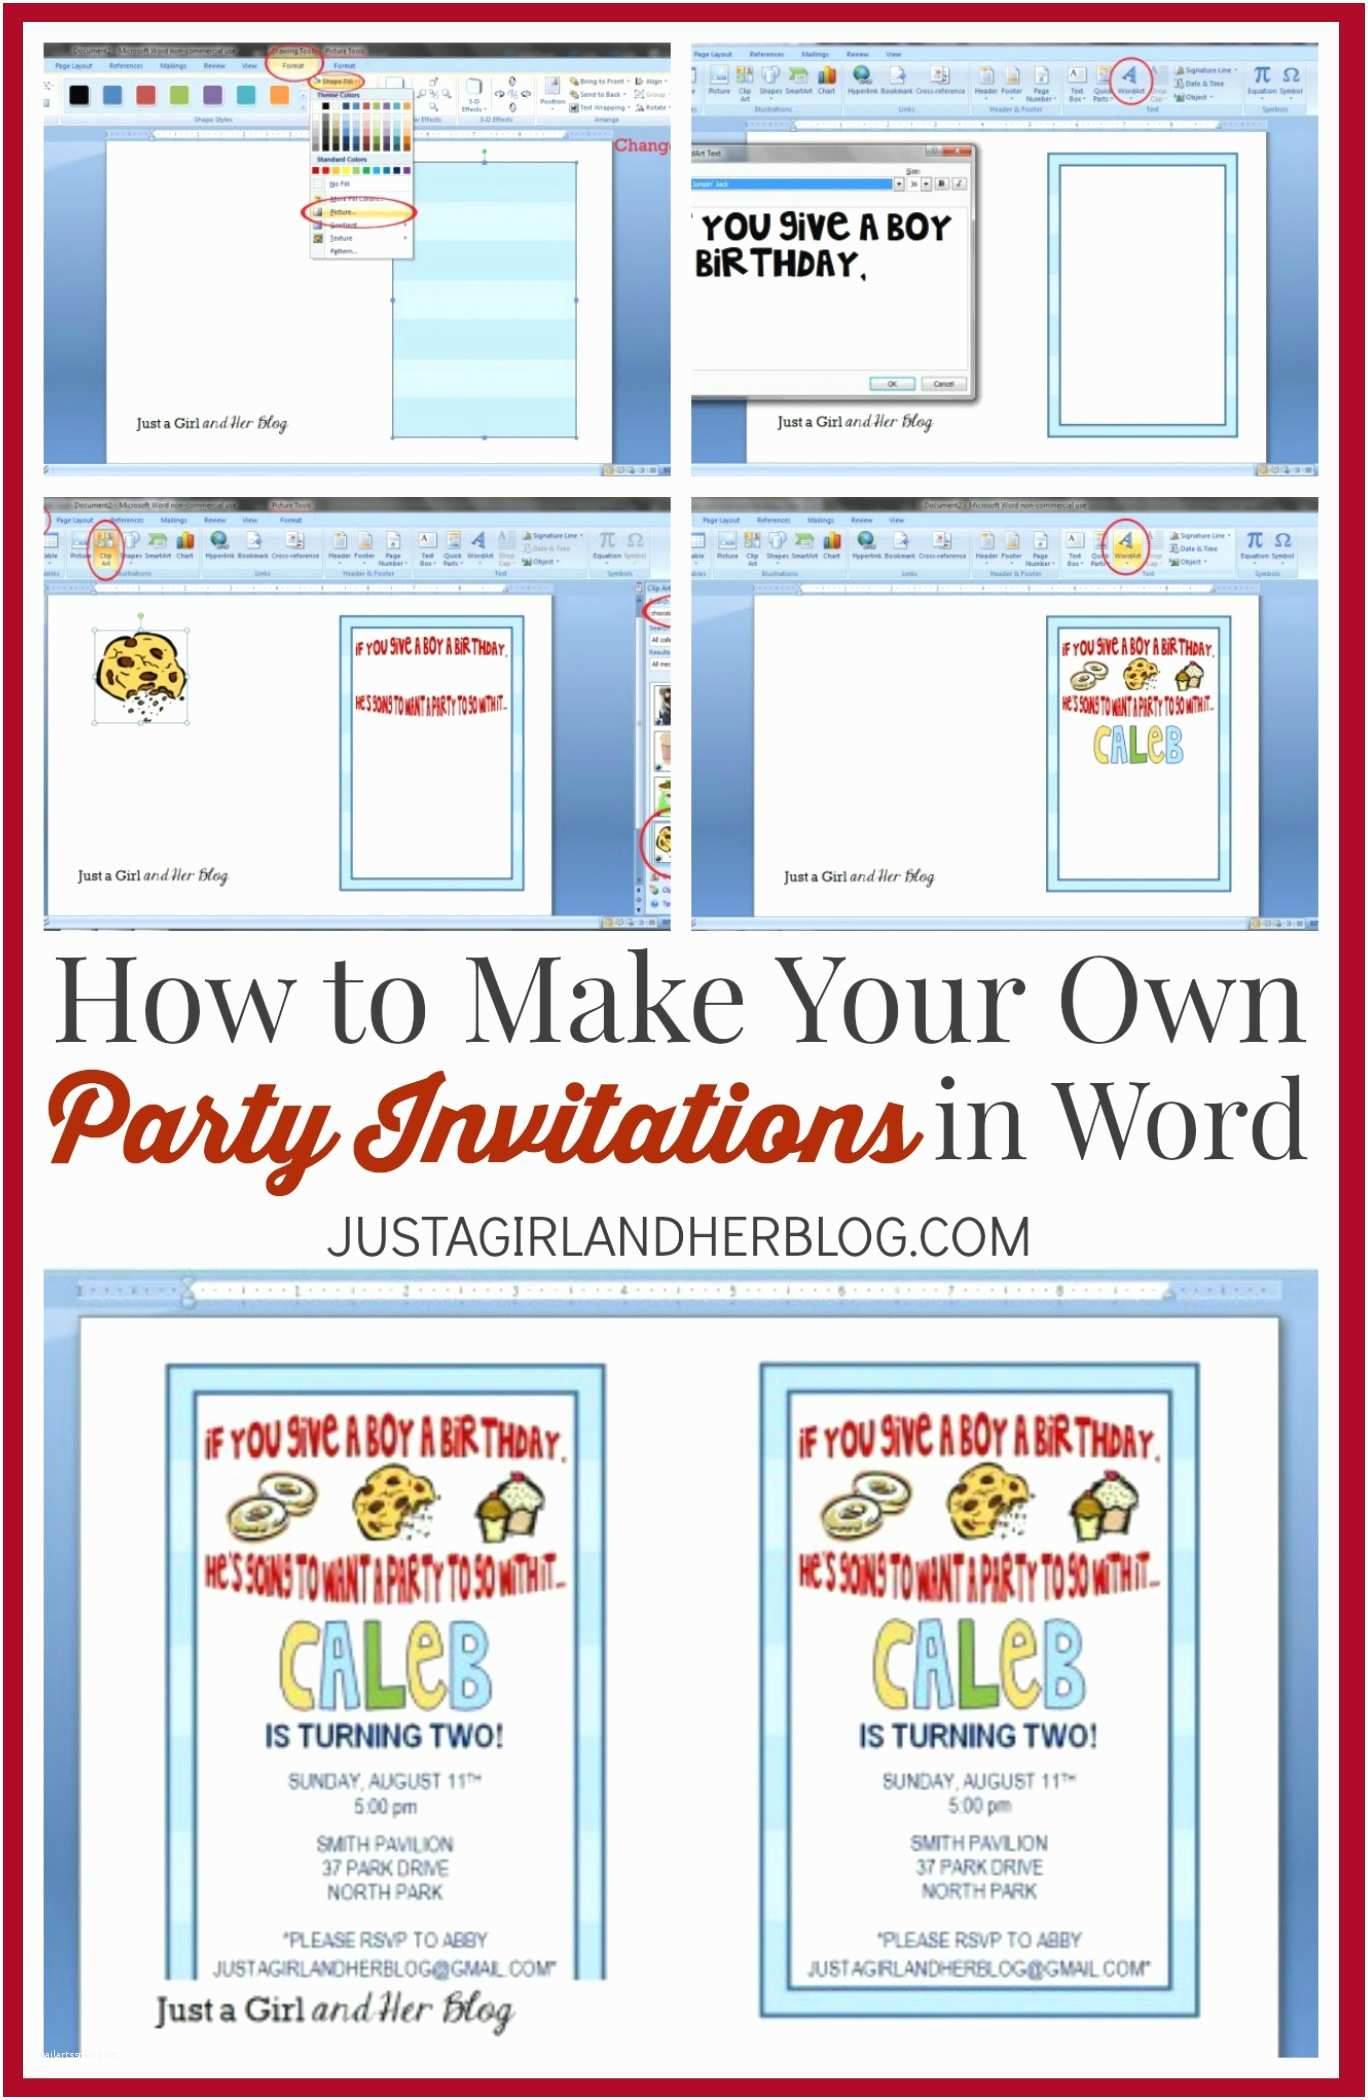 Design Your Own Party Invitations Design Your Own Party Invitations